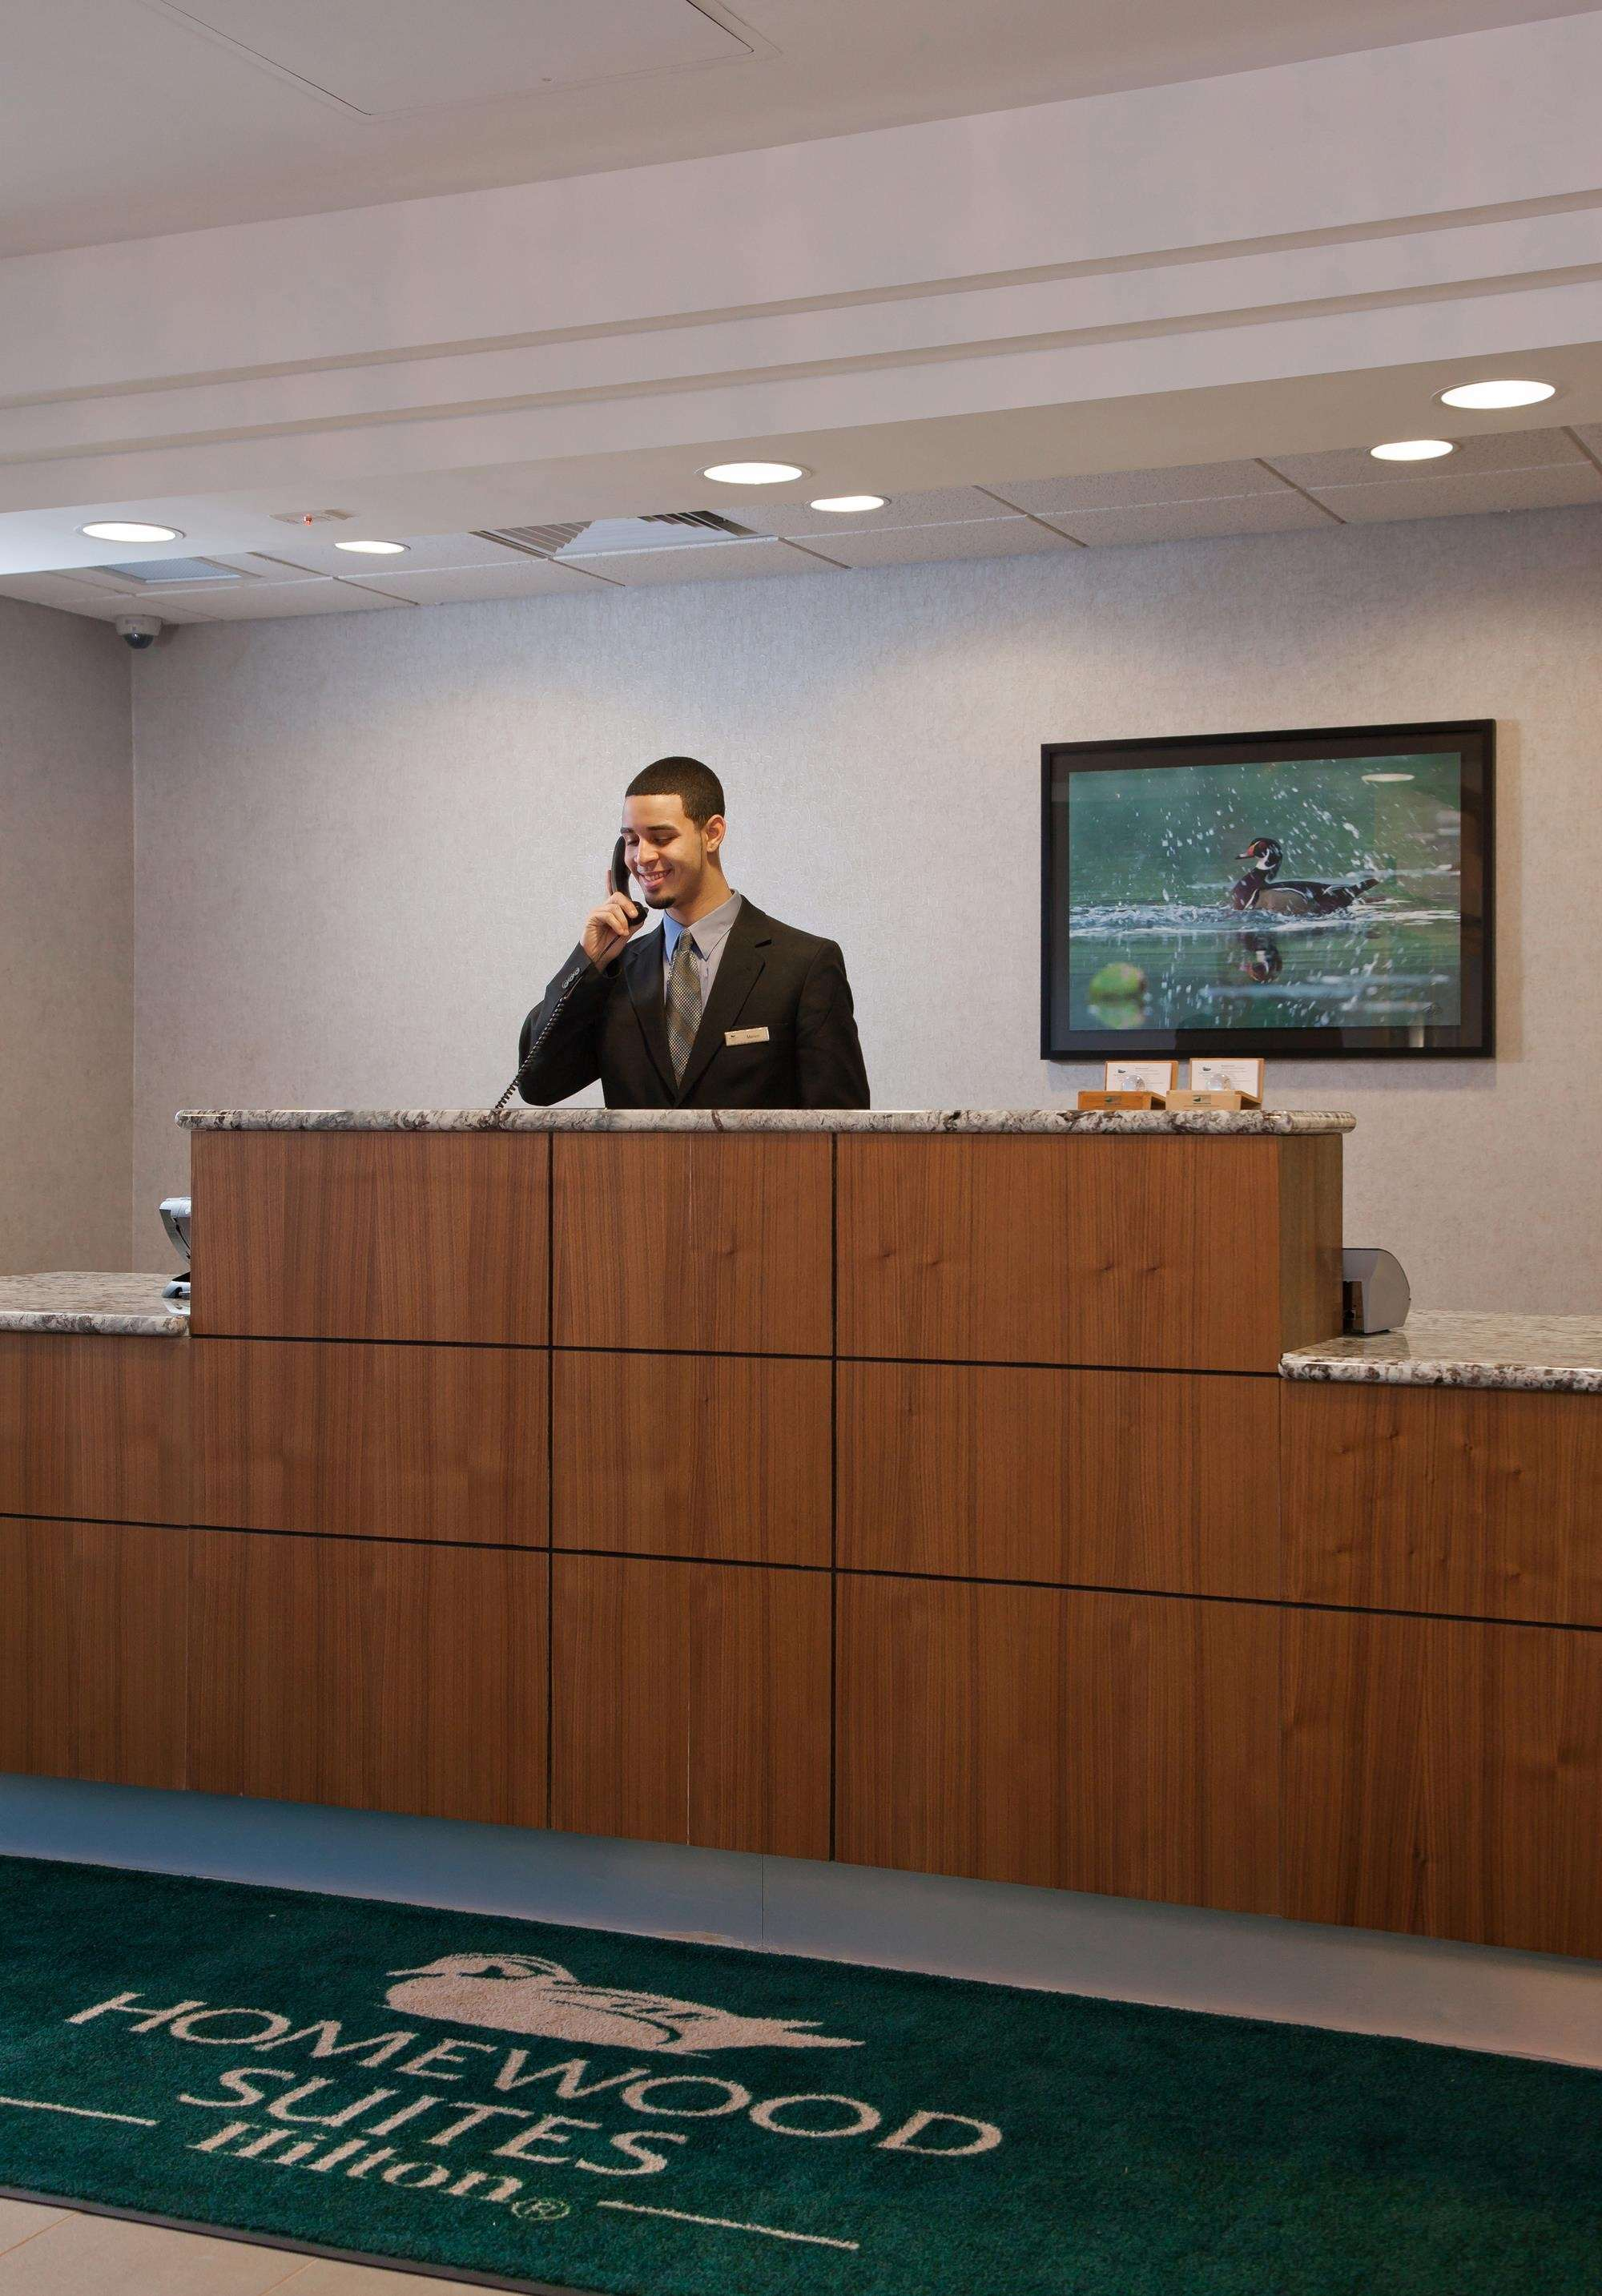 Homewood Suites by Hilton Boston/Canton, MA image 3